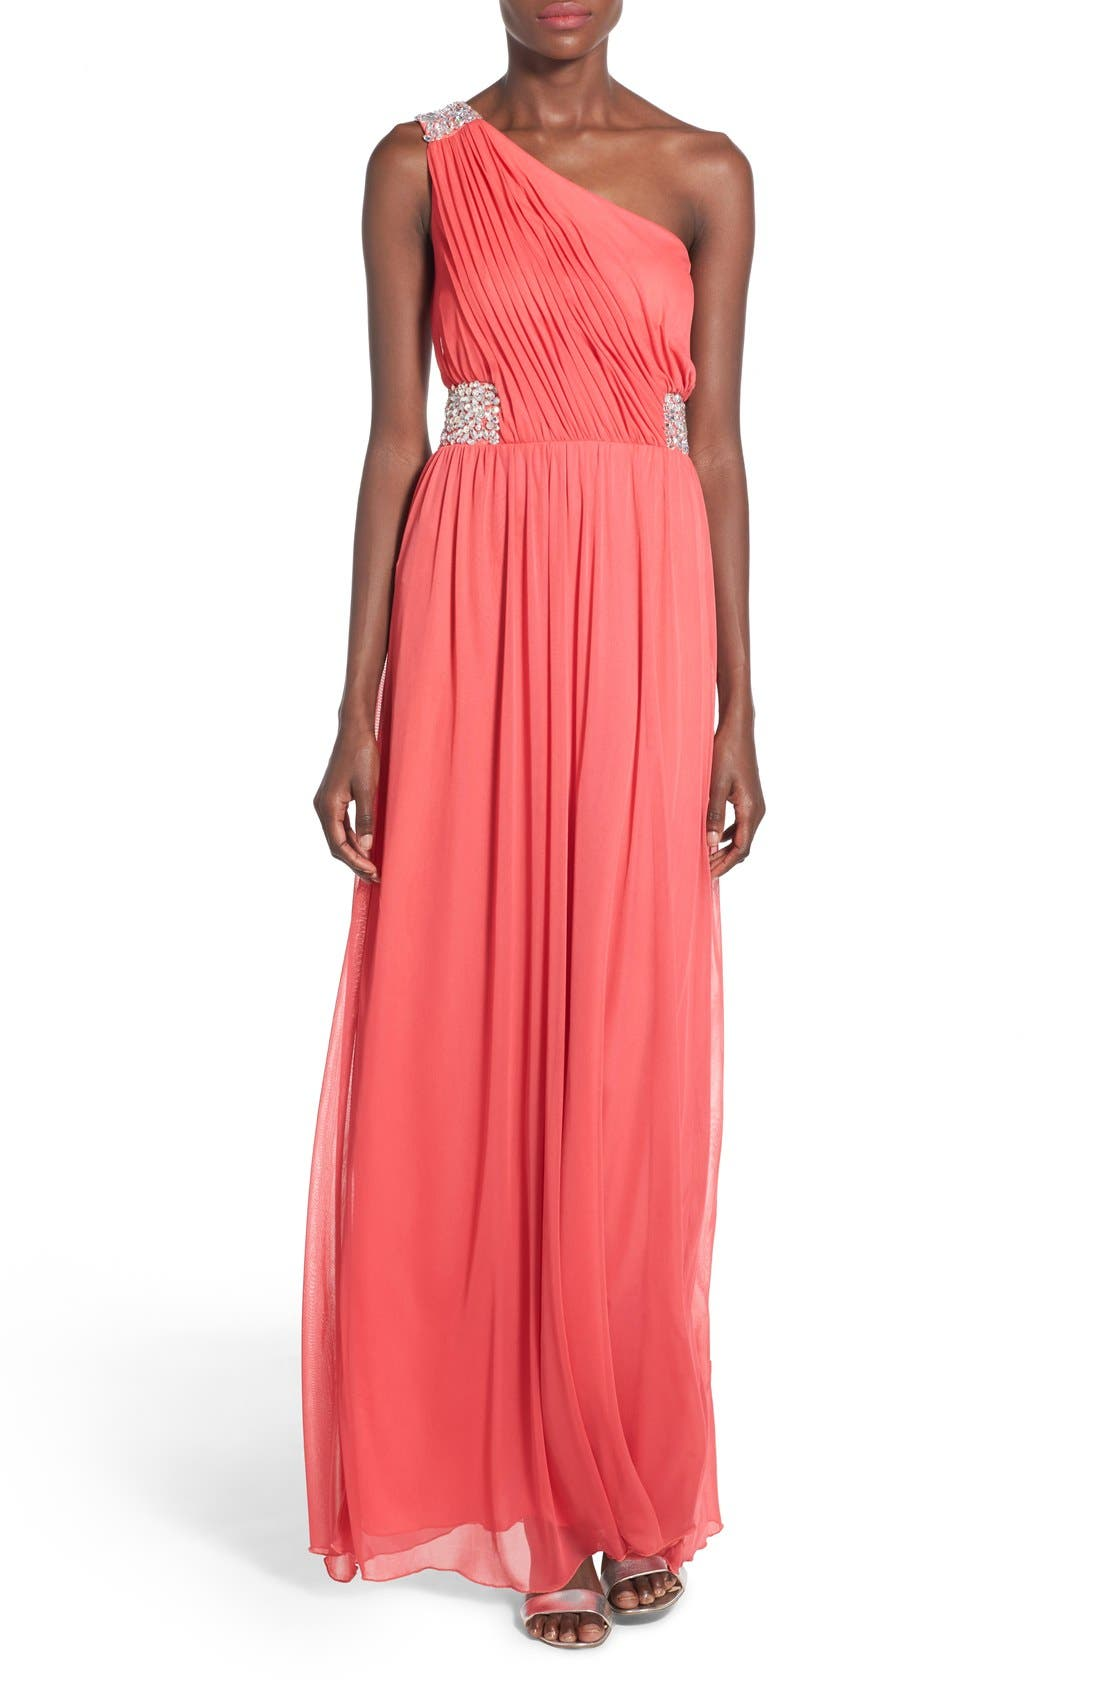 Main Image - Speechless 'Shelby' Embellished One Shoulder Gown